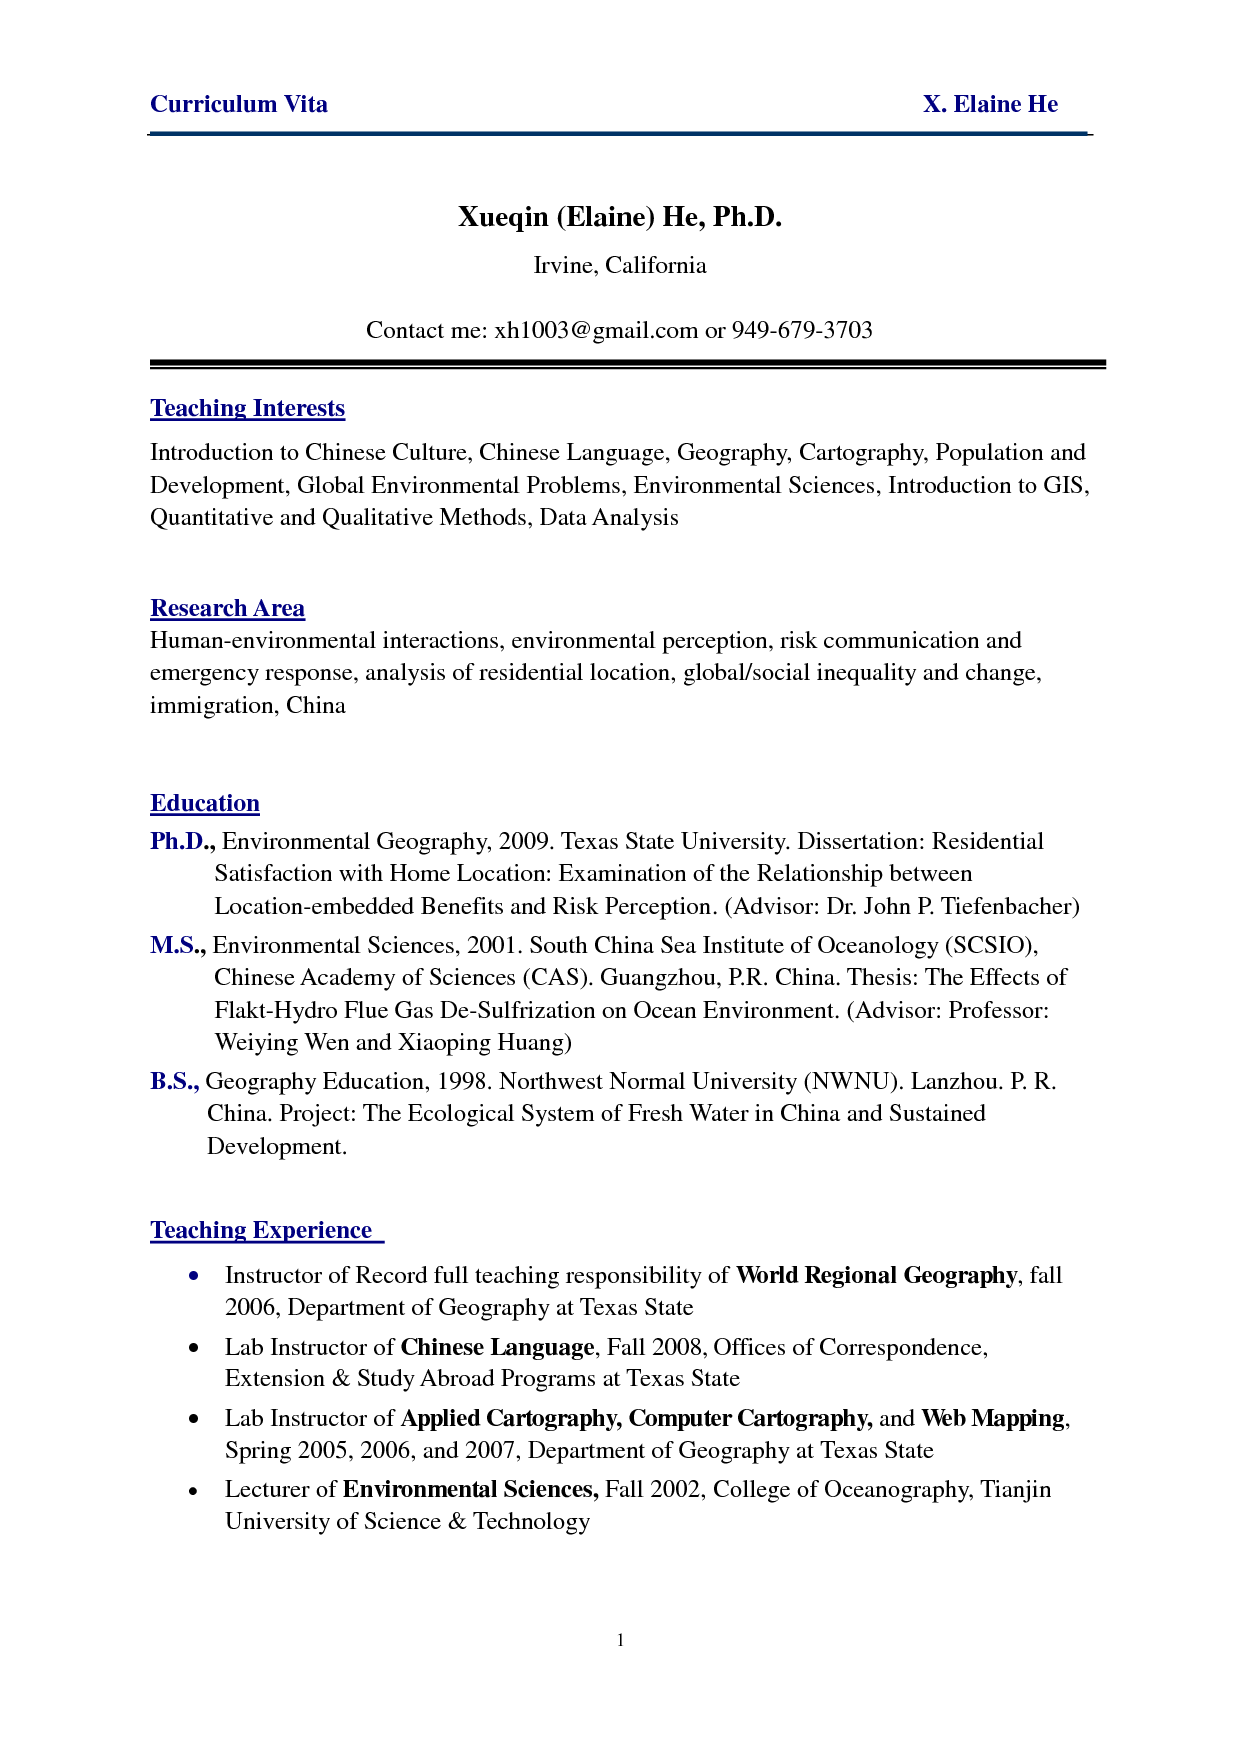 new grad lpn resume with no experience